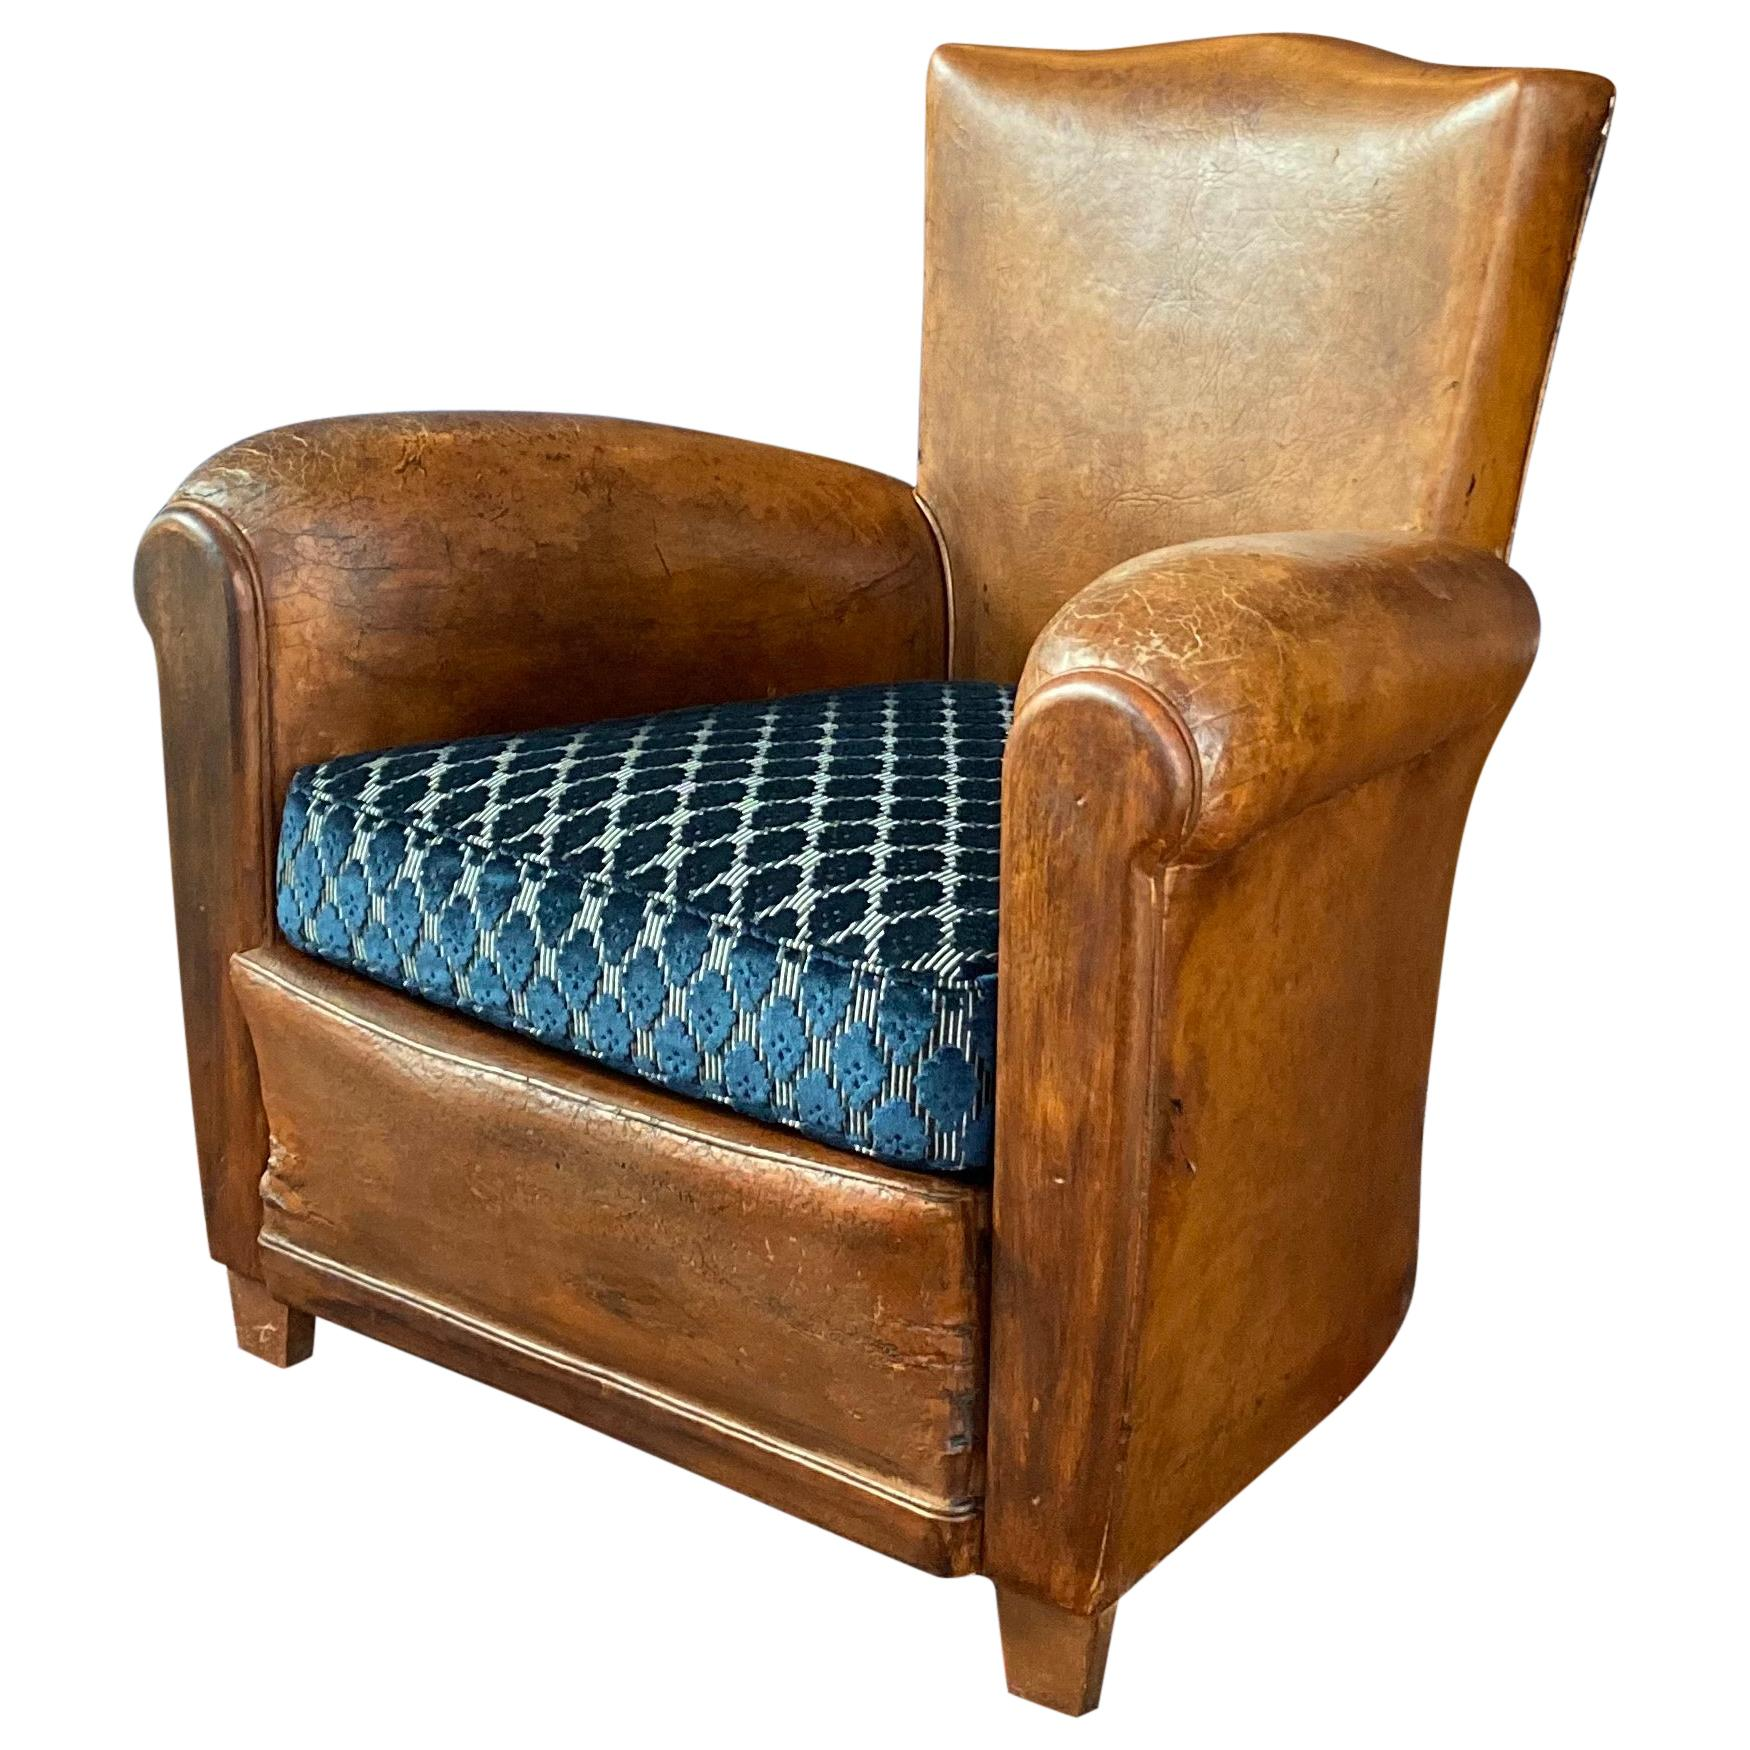 1930s Art Deco French Leather Club Chair, Christian Lacroix, France